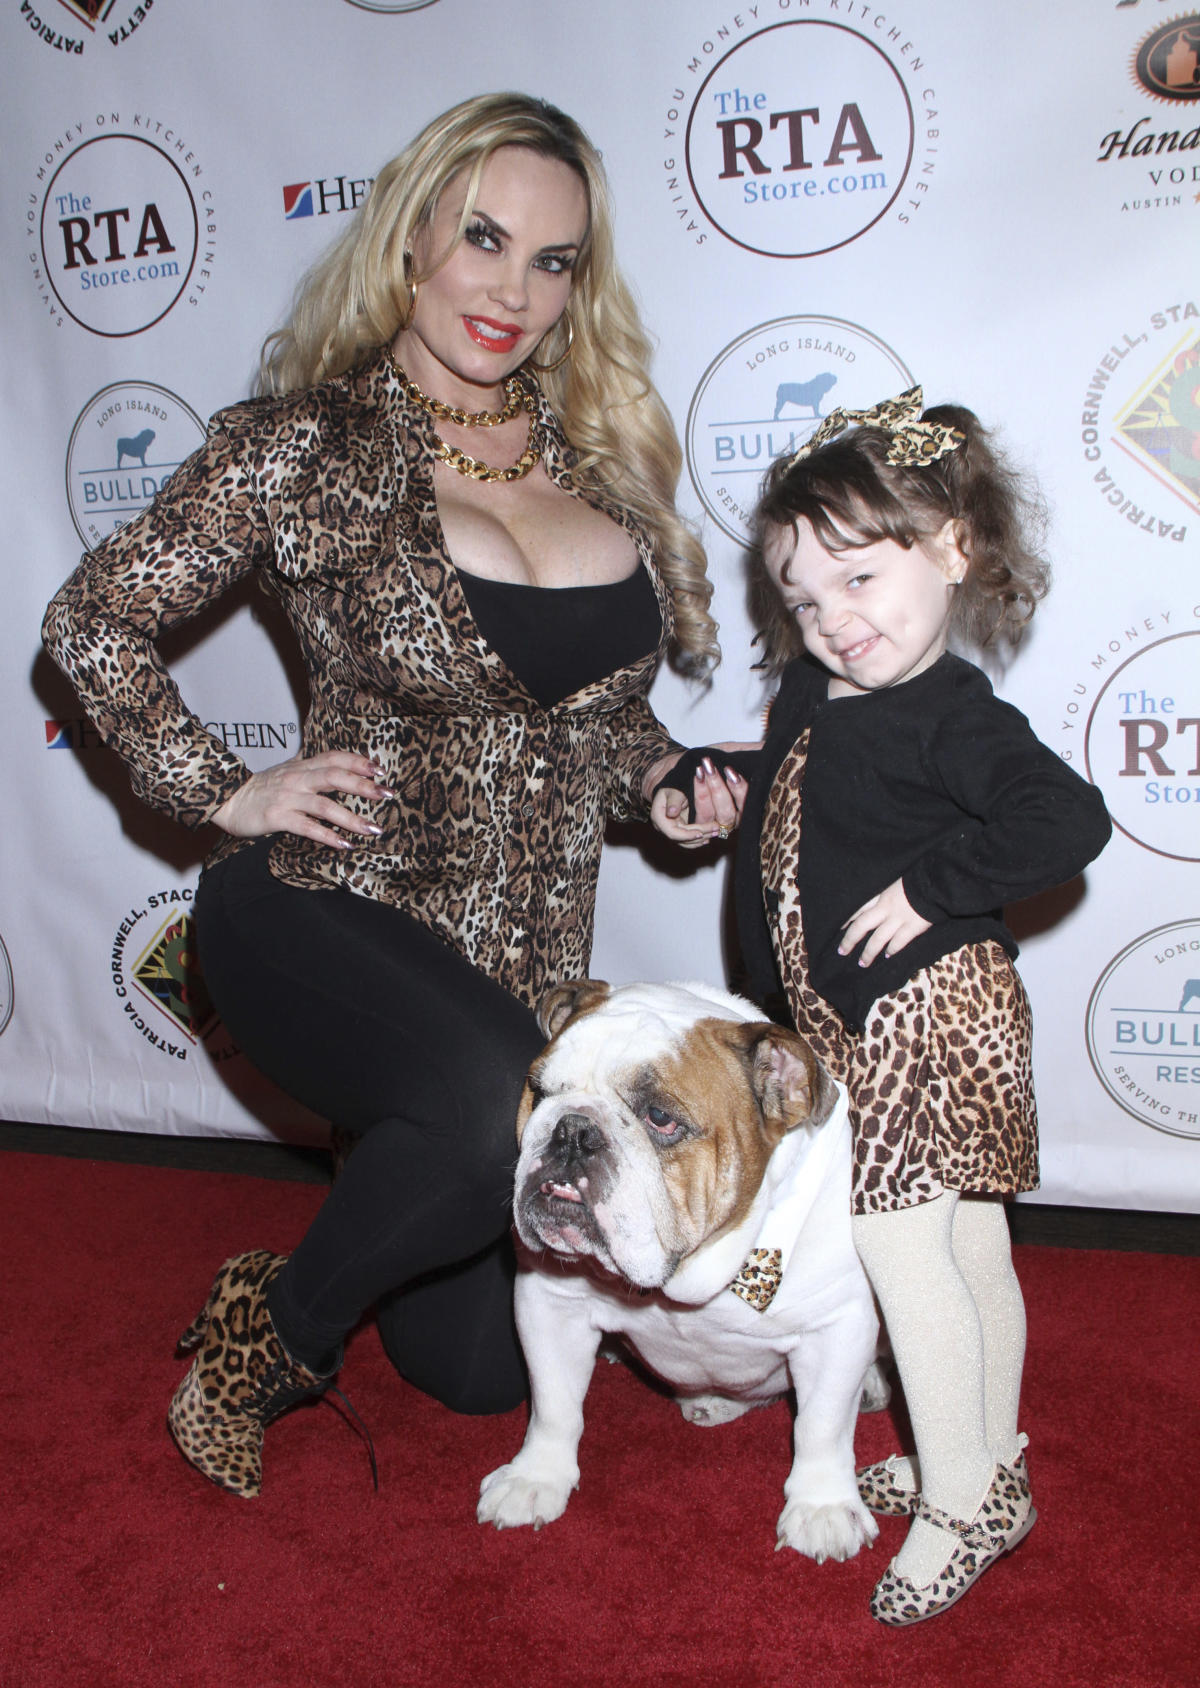 Coco Austin Criticized for 5-Year-Old Daughter Chanel's 'Mini' Nail Tips In School Photo - Yahoo Lifestyle